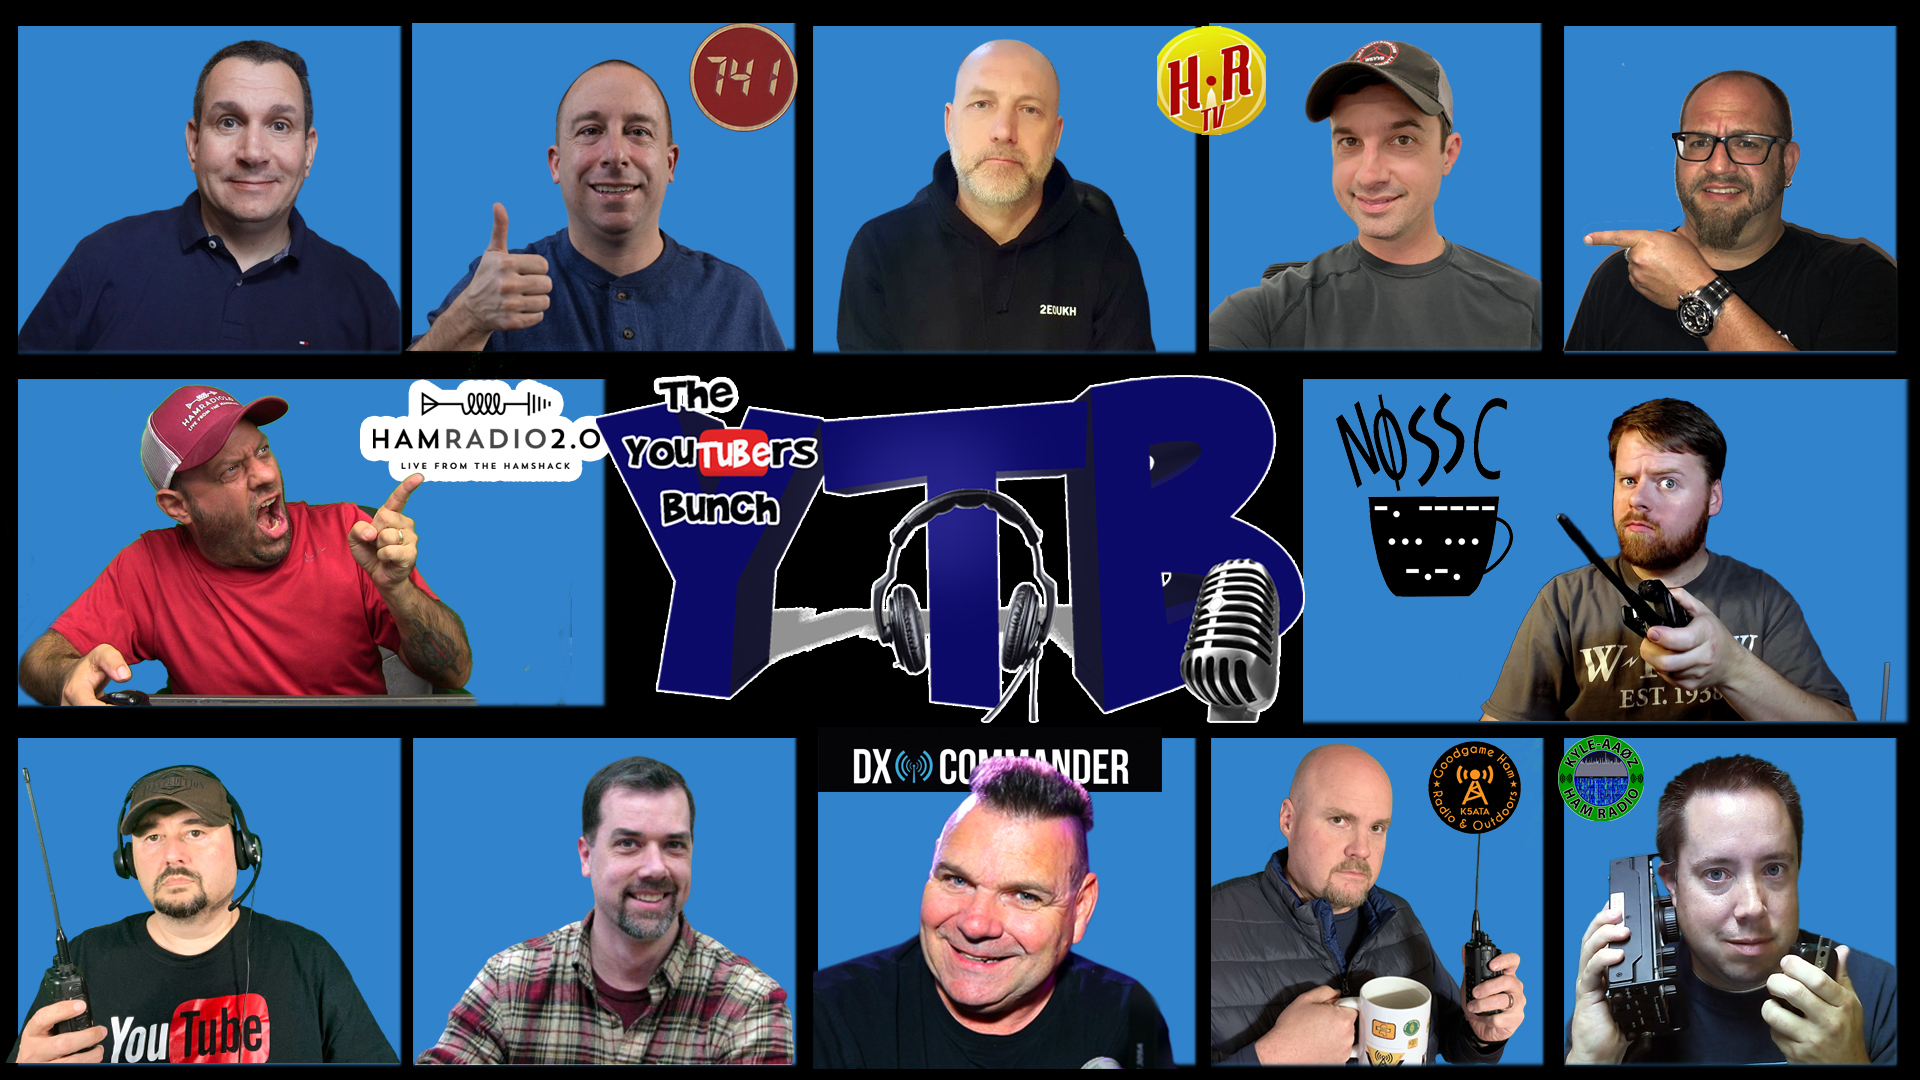 Episode 401: YouTubers Hamfest Survey Discussion from the YouTubers Bunch for Ham Radio